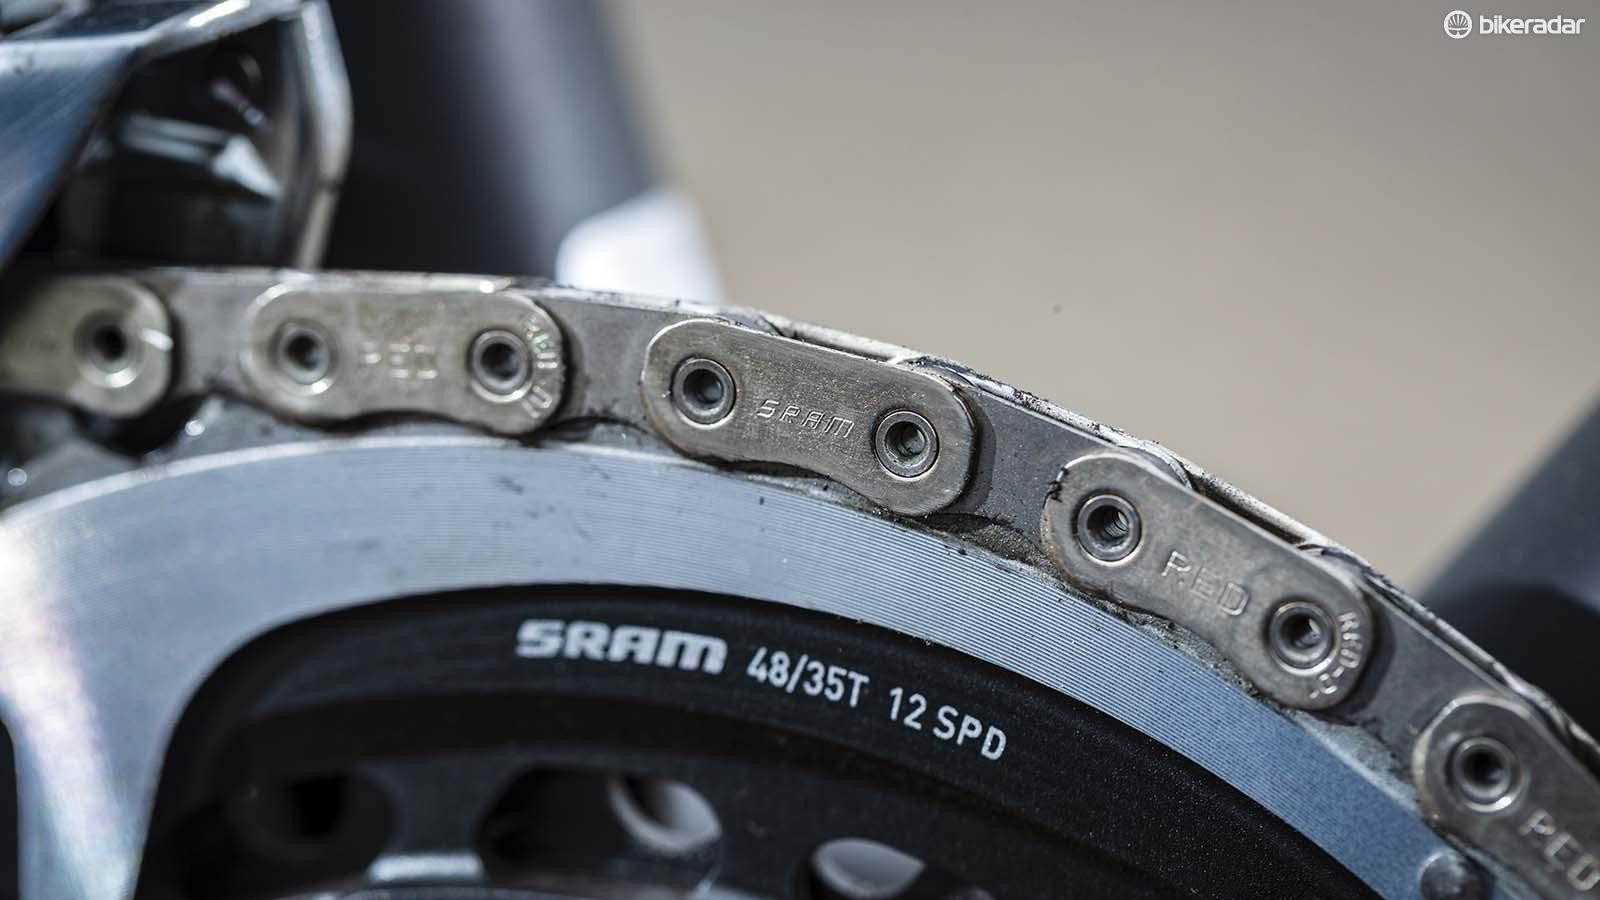 The new flat topped chain